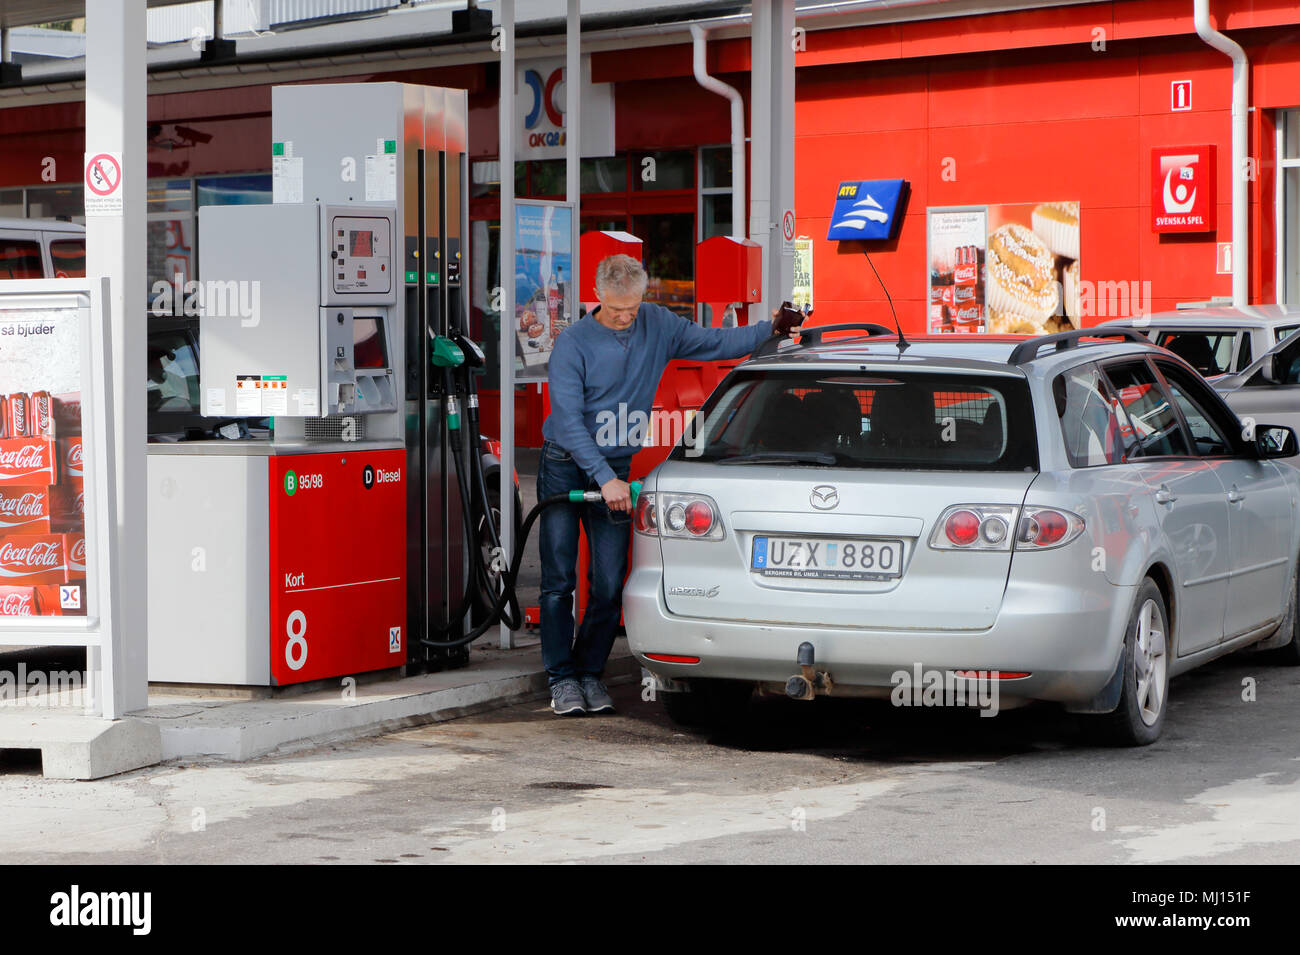 Ornskoldsvik, Sweden - July 14, 2015: One person refueling a car at a self service gas station in service fpr the brand OKQ8. - Stock Image